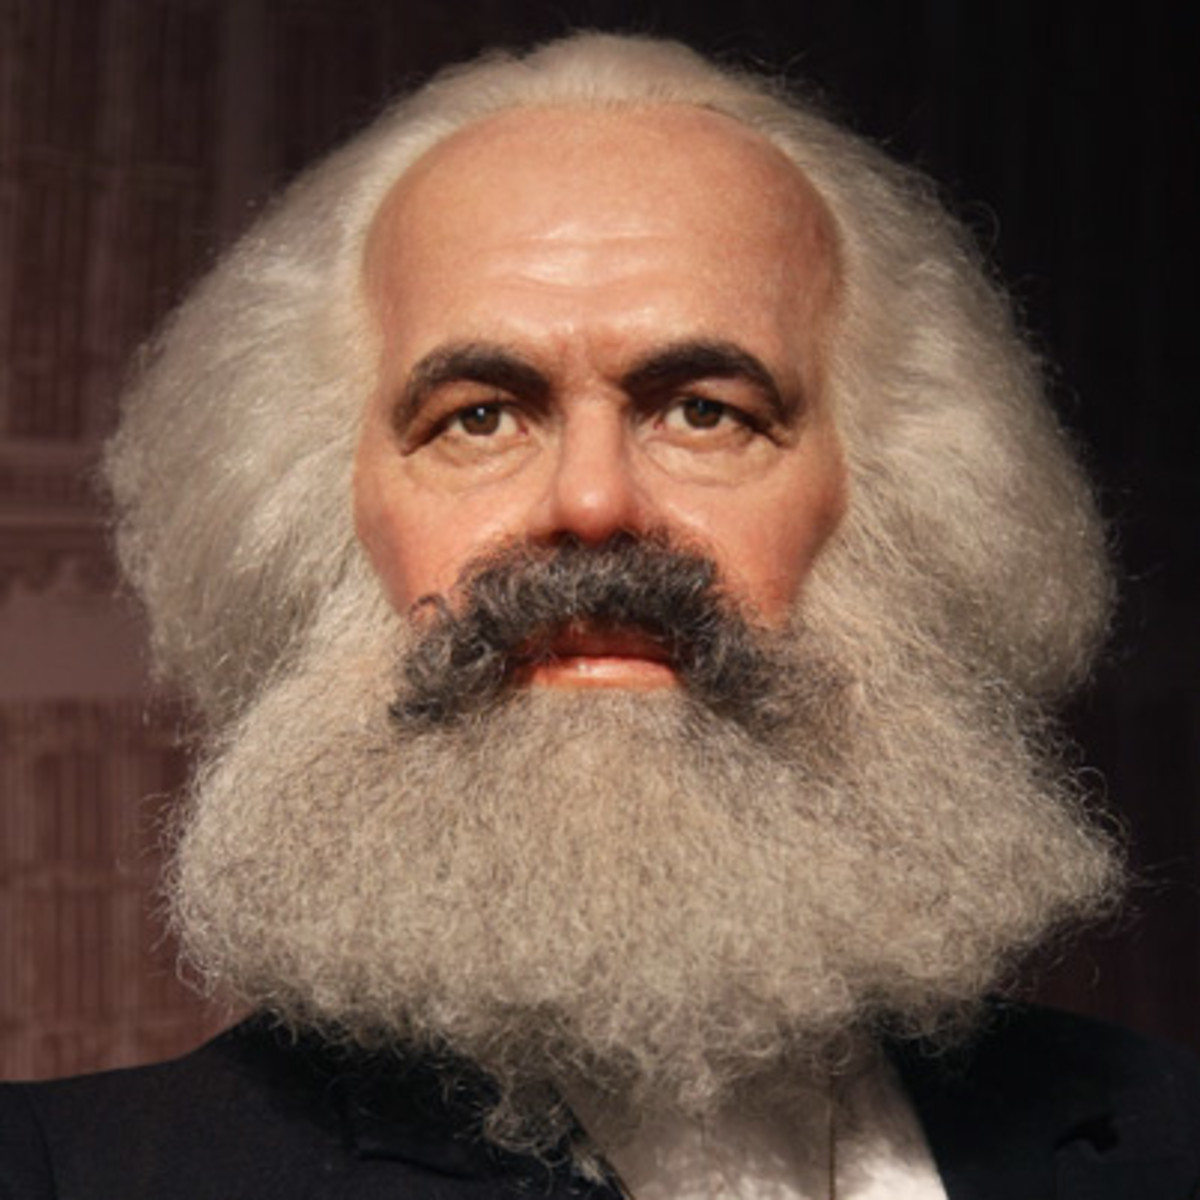 a biography of karl marx a german philosopher economist and revolutionary socialist